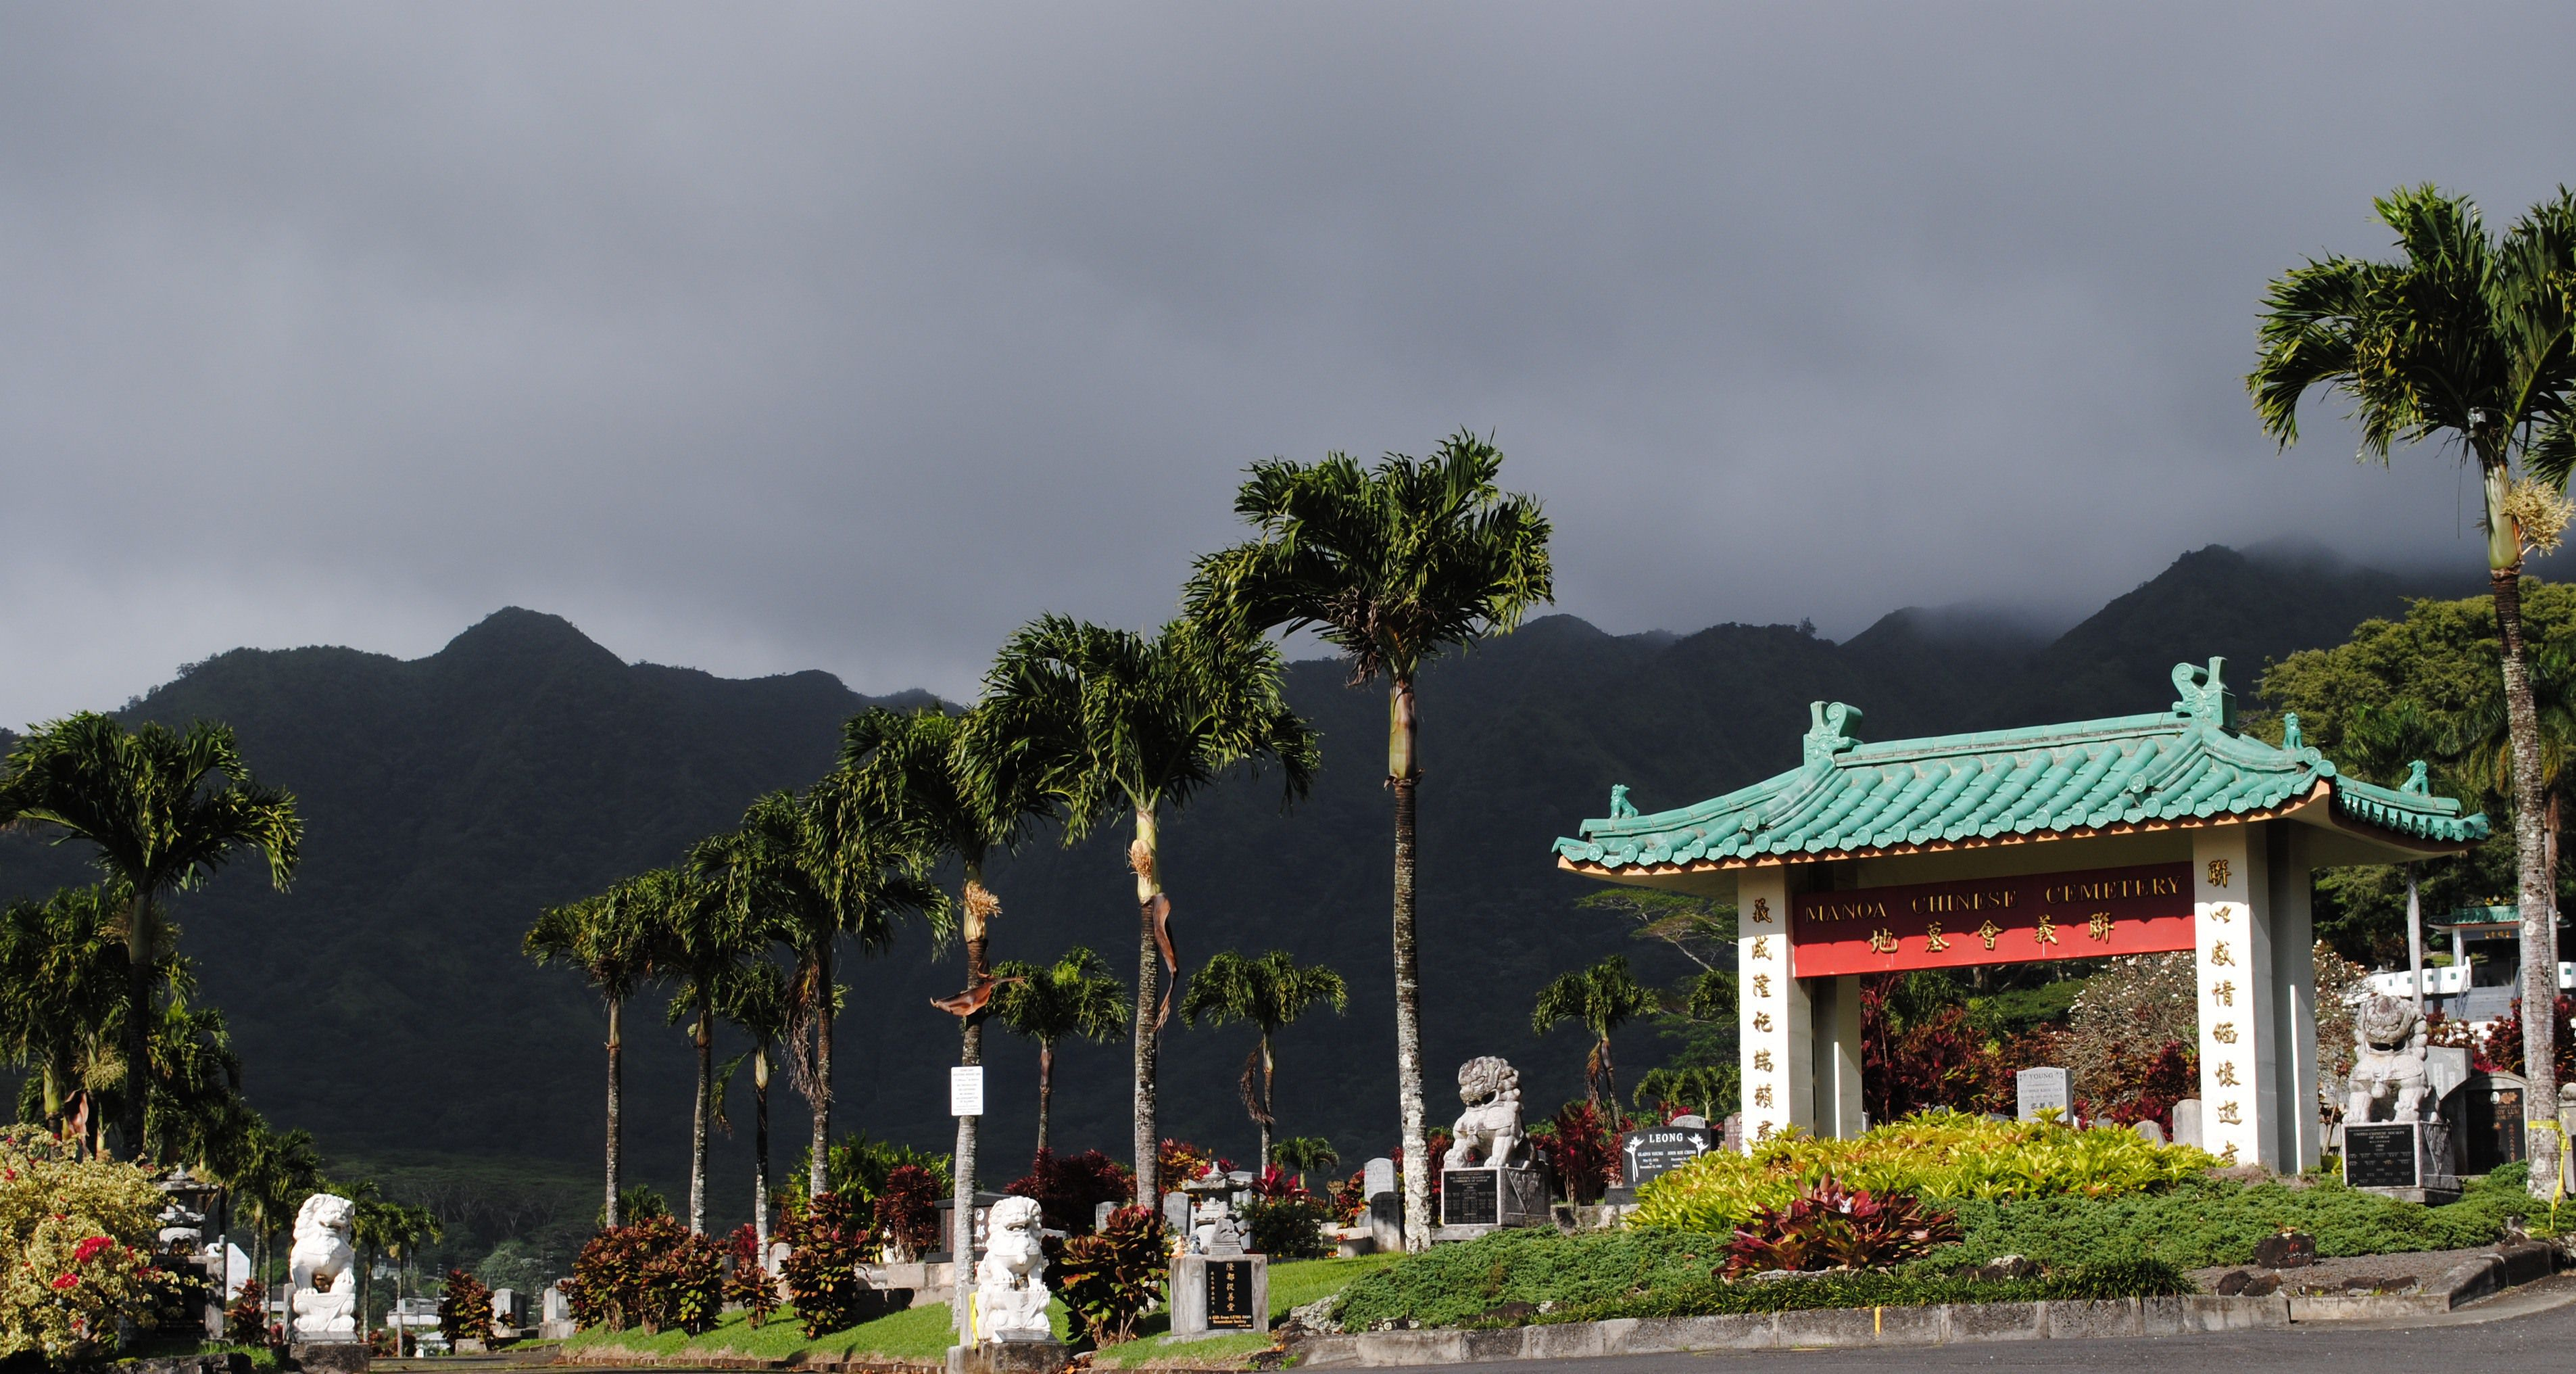 The Manoa Chinese Cemetery